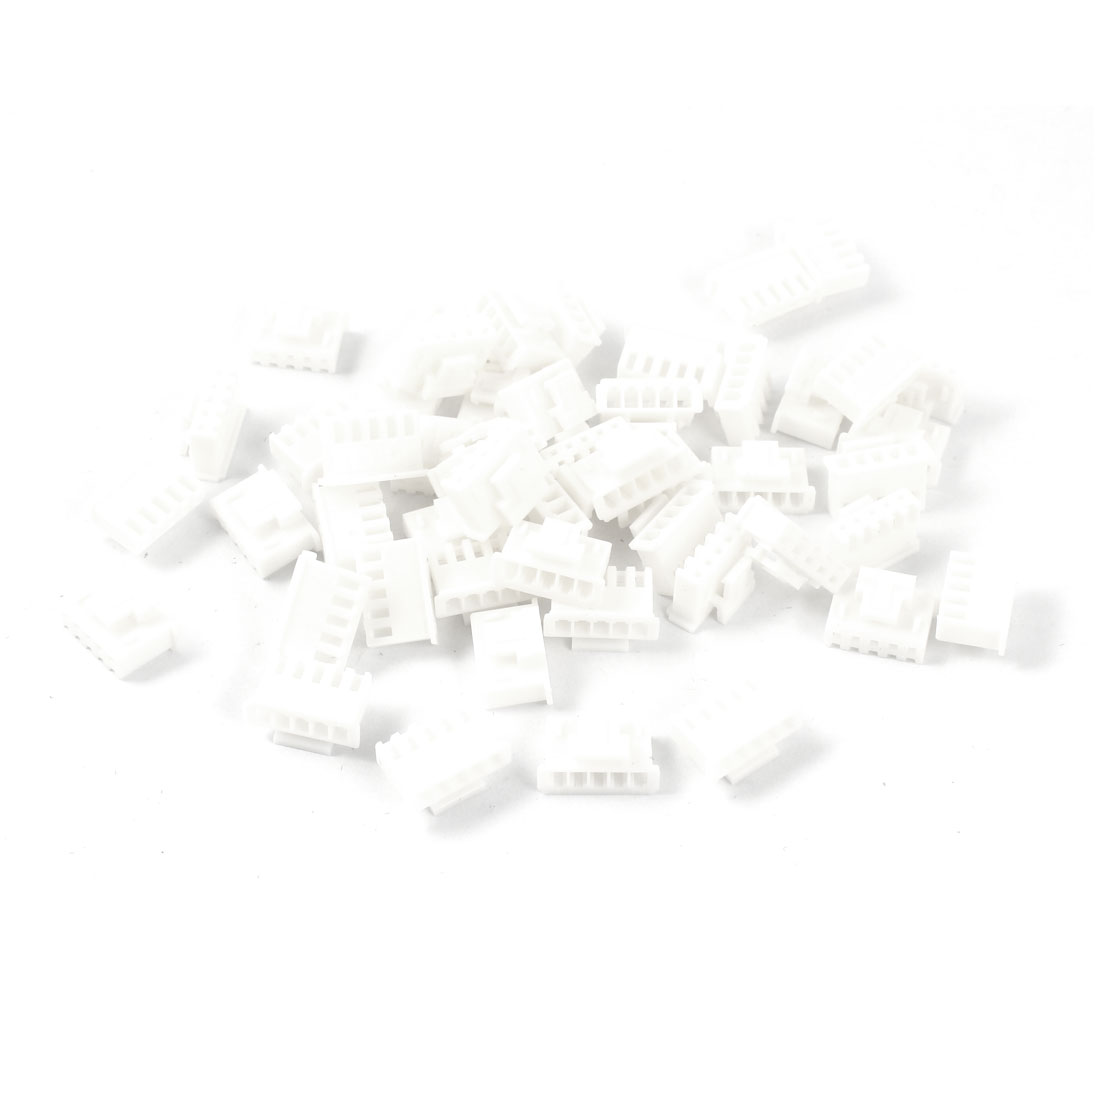 50Pcs 5 Pin 2.4mm Pitch White Plastic Female Balance Charger Connector Plug Housing w Clip for Lithium Battery